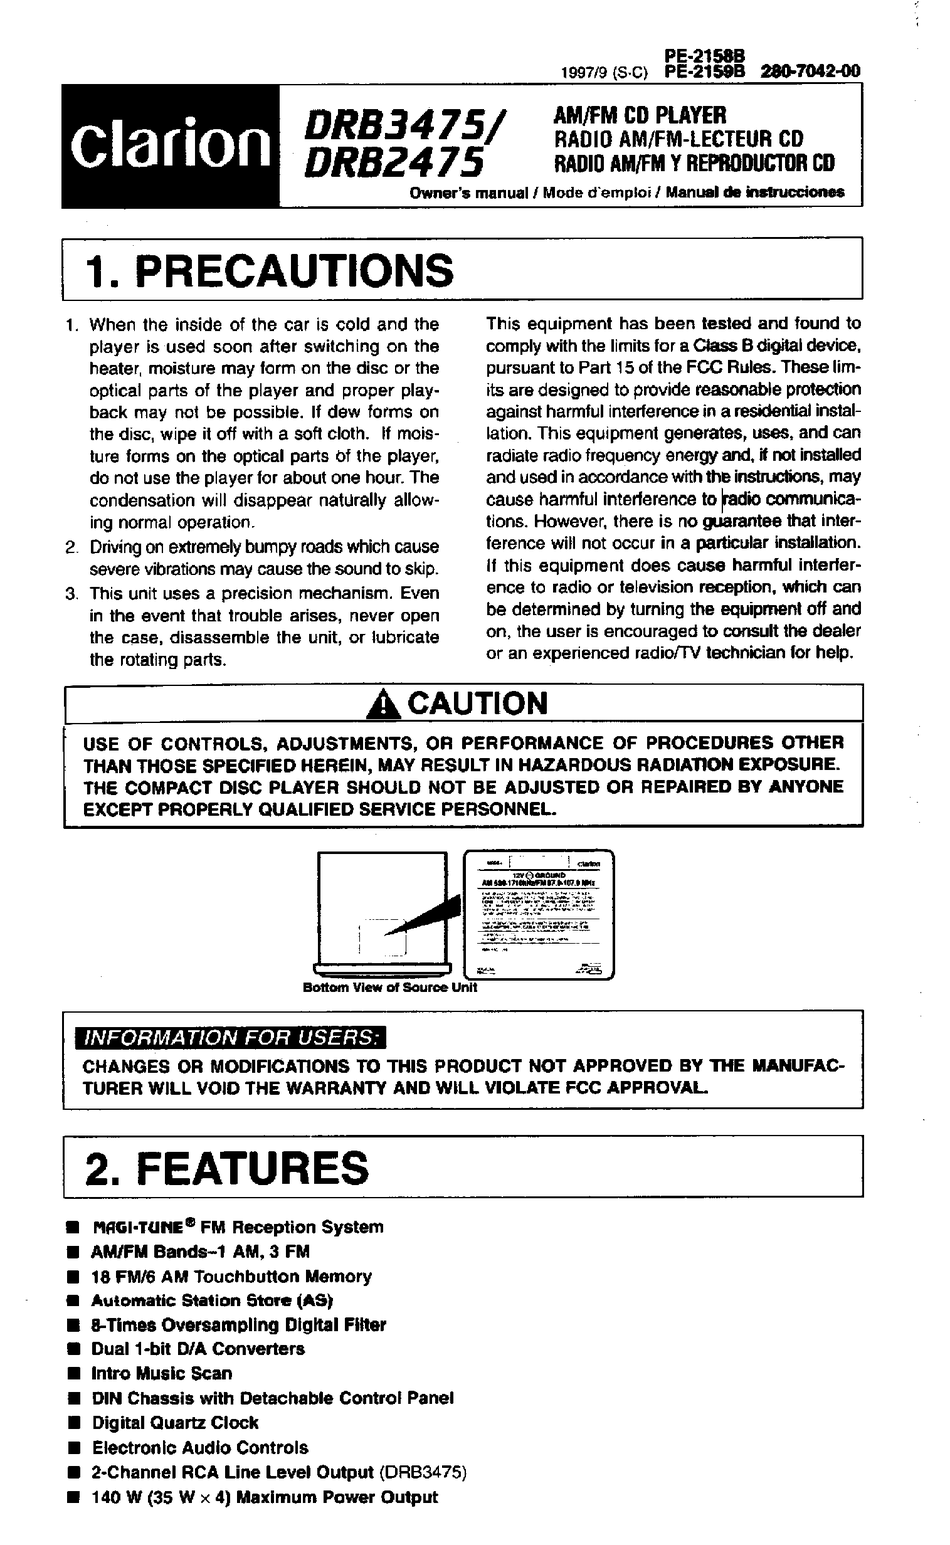 Clarion Drb2475 Owner S Manual Pdf